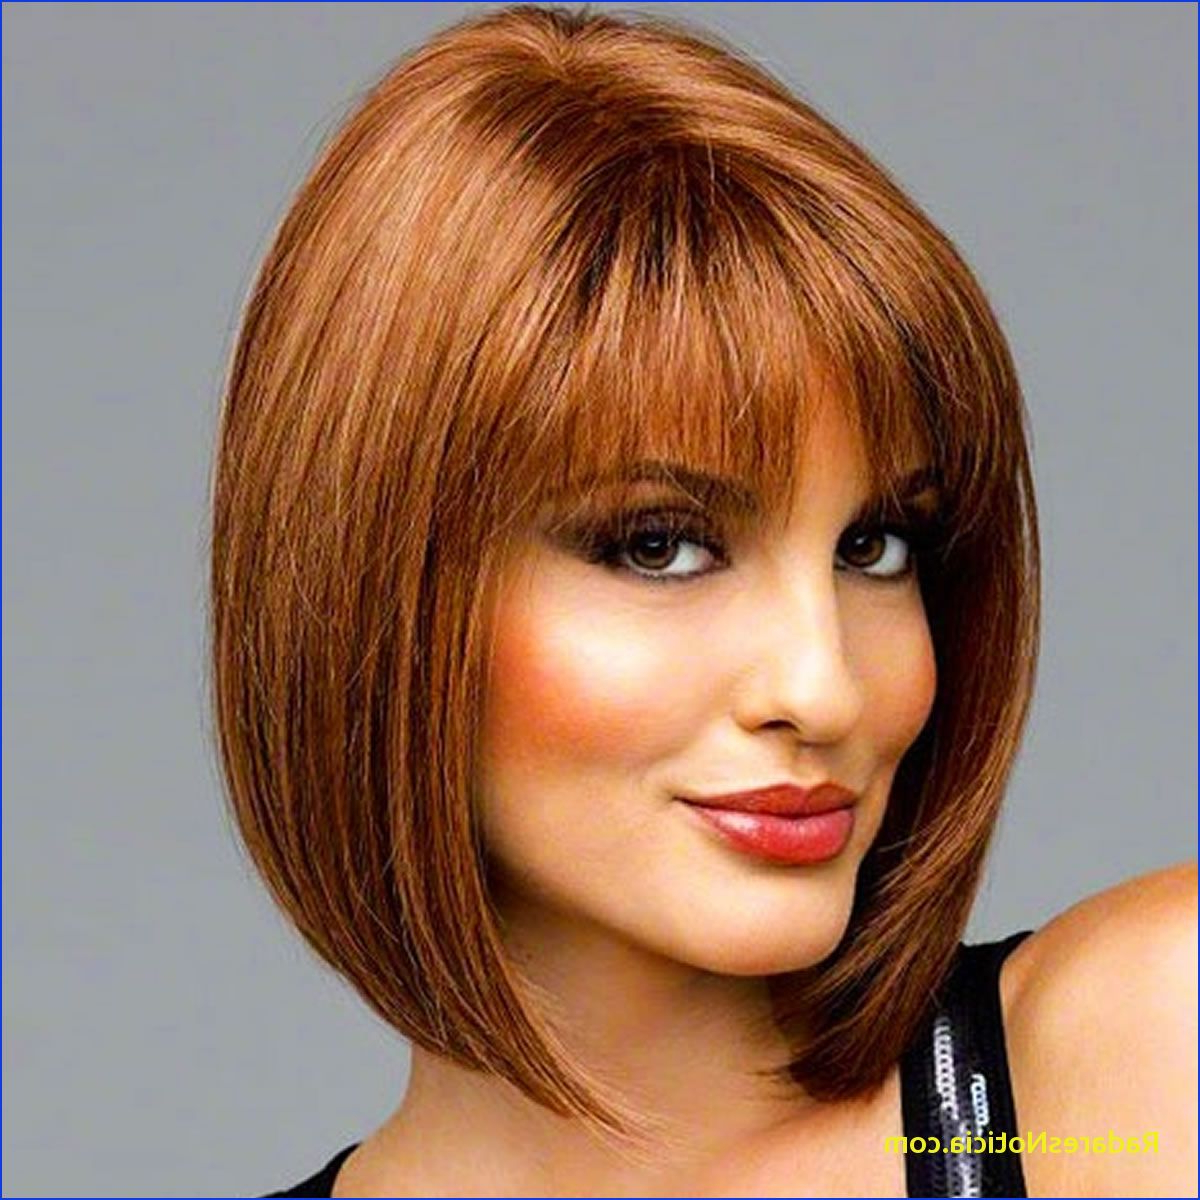 Long Bob With Bangs 2018 The Best 30 Short Bob Haircuts – 2018 Short In Short Tapered Bob Hairstyles With Long Bangs (View 14 of 20)